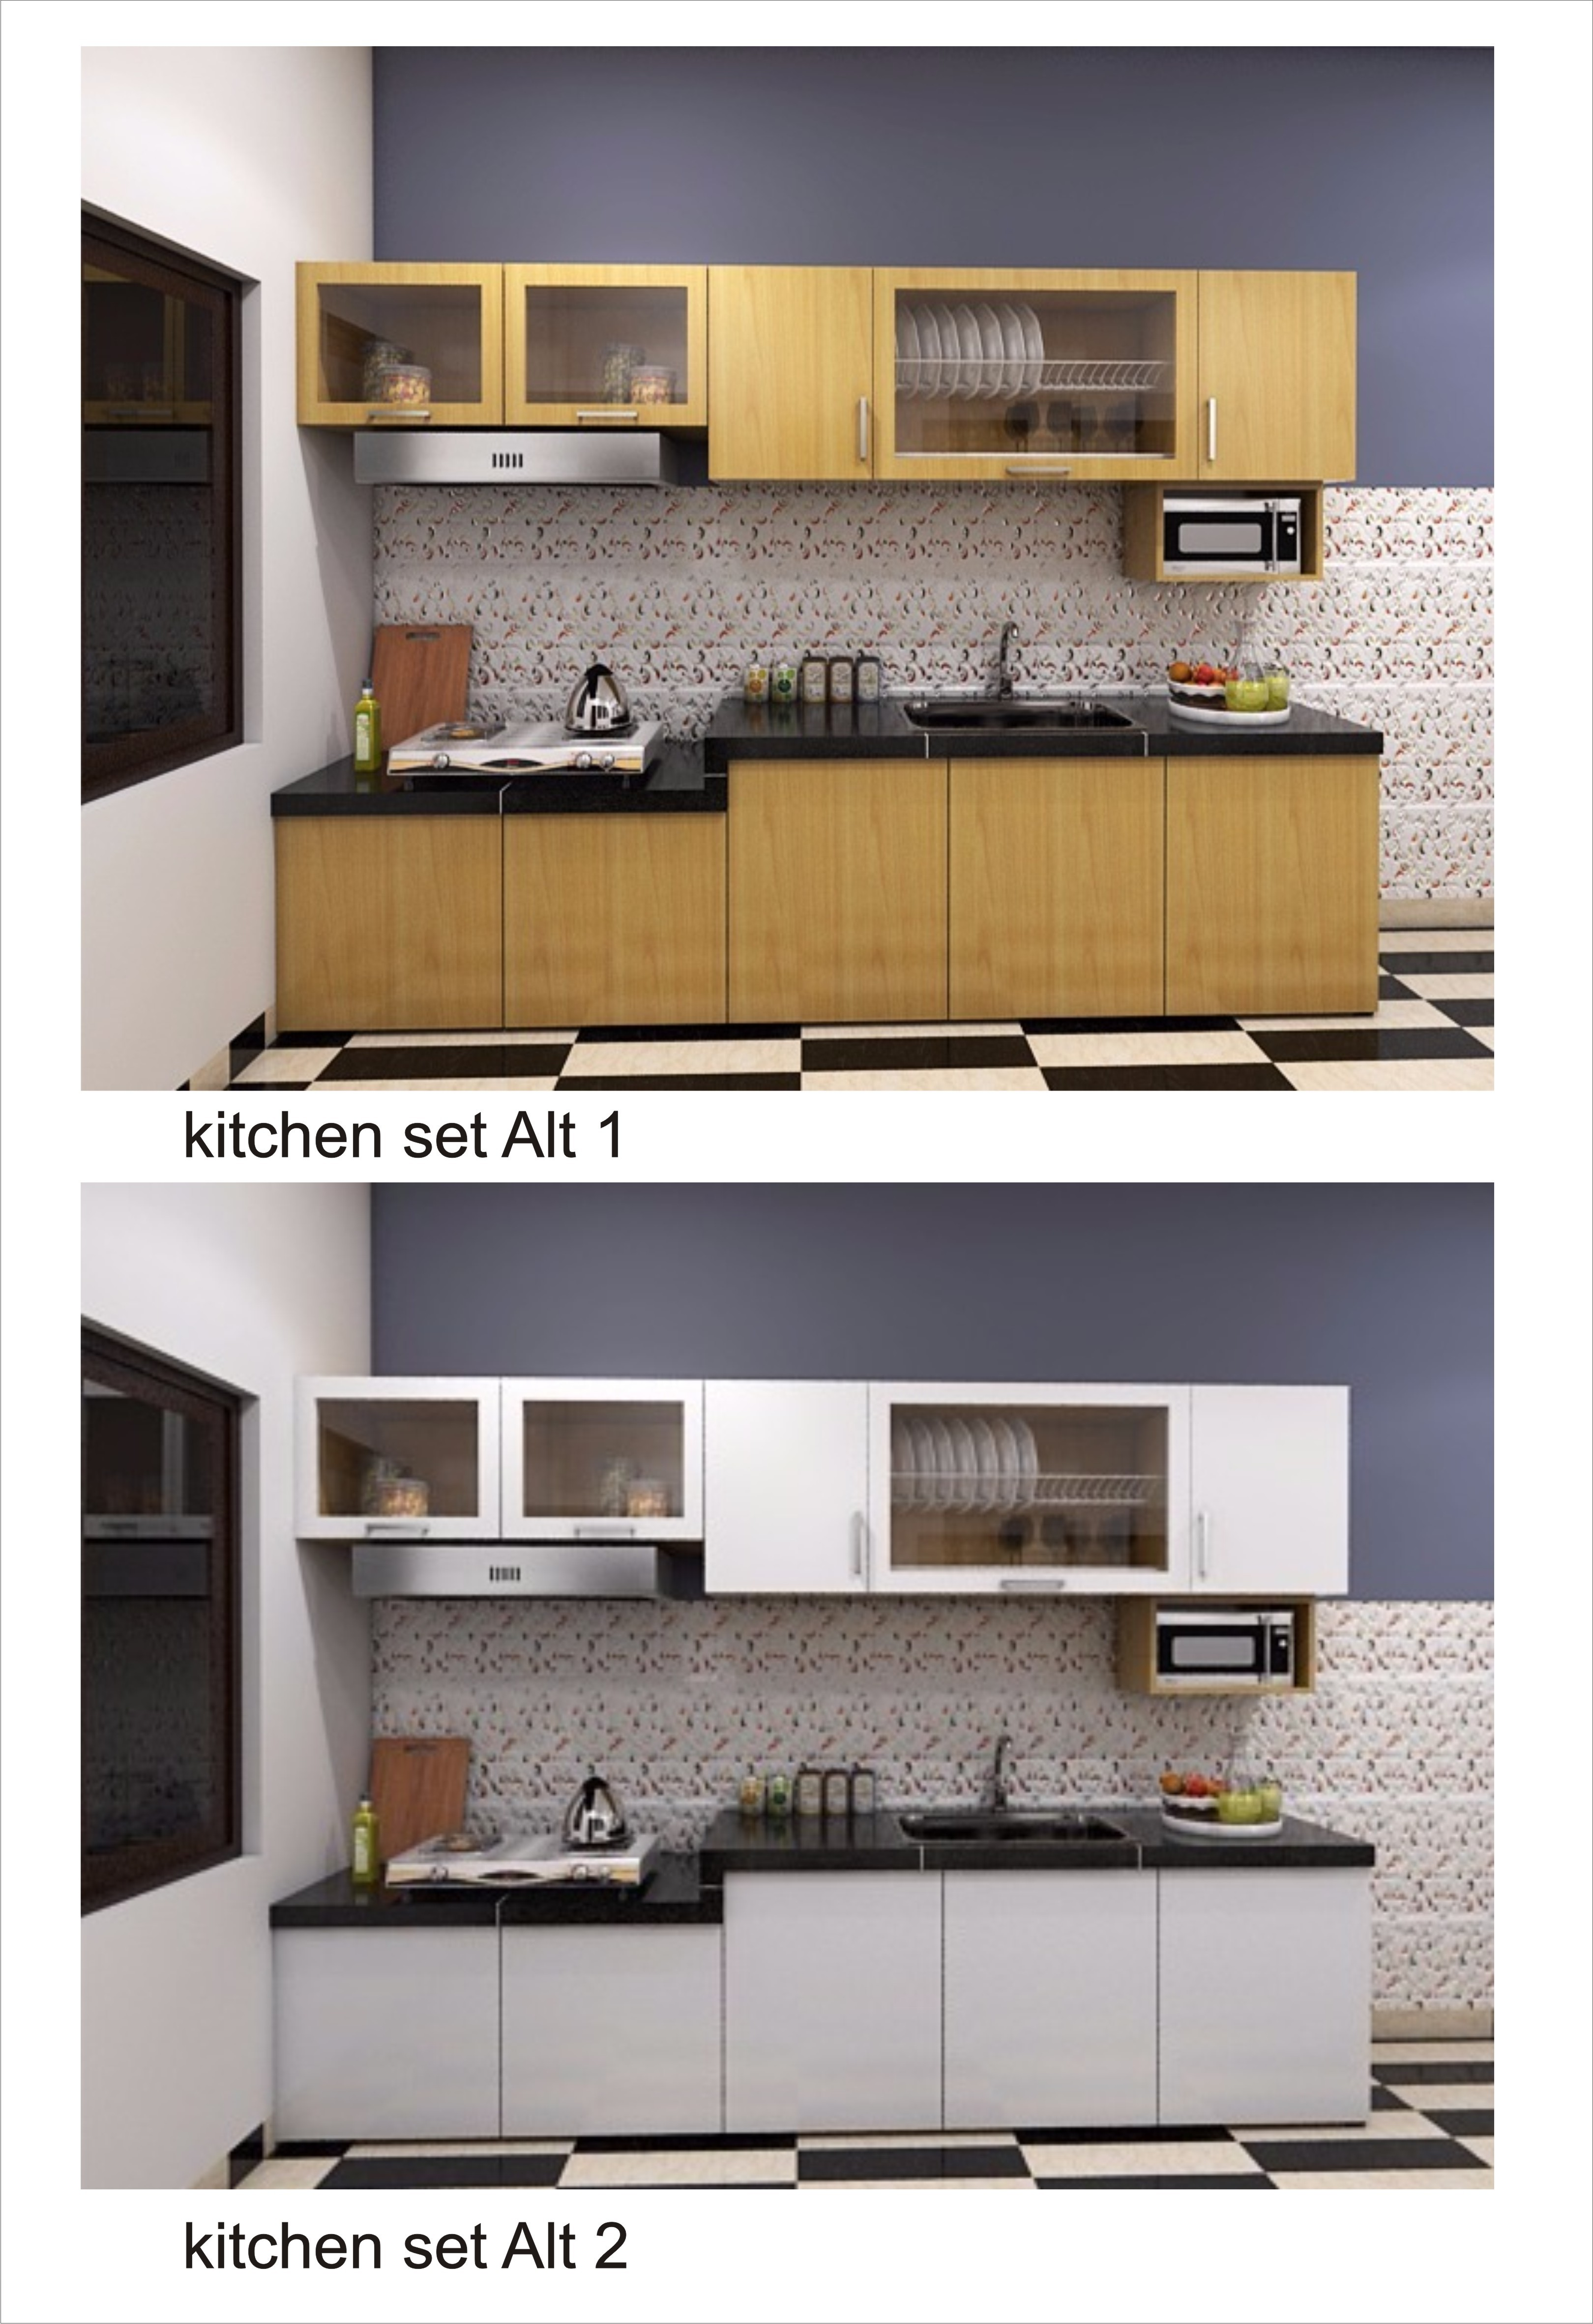 Kitchen set kayu palet minimalis